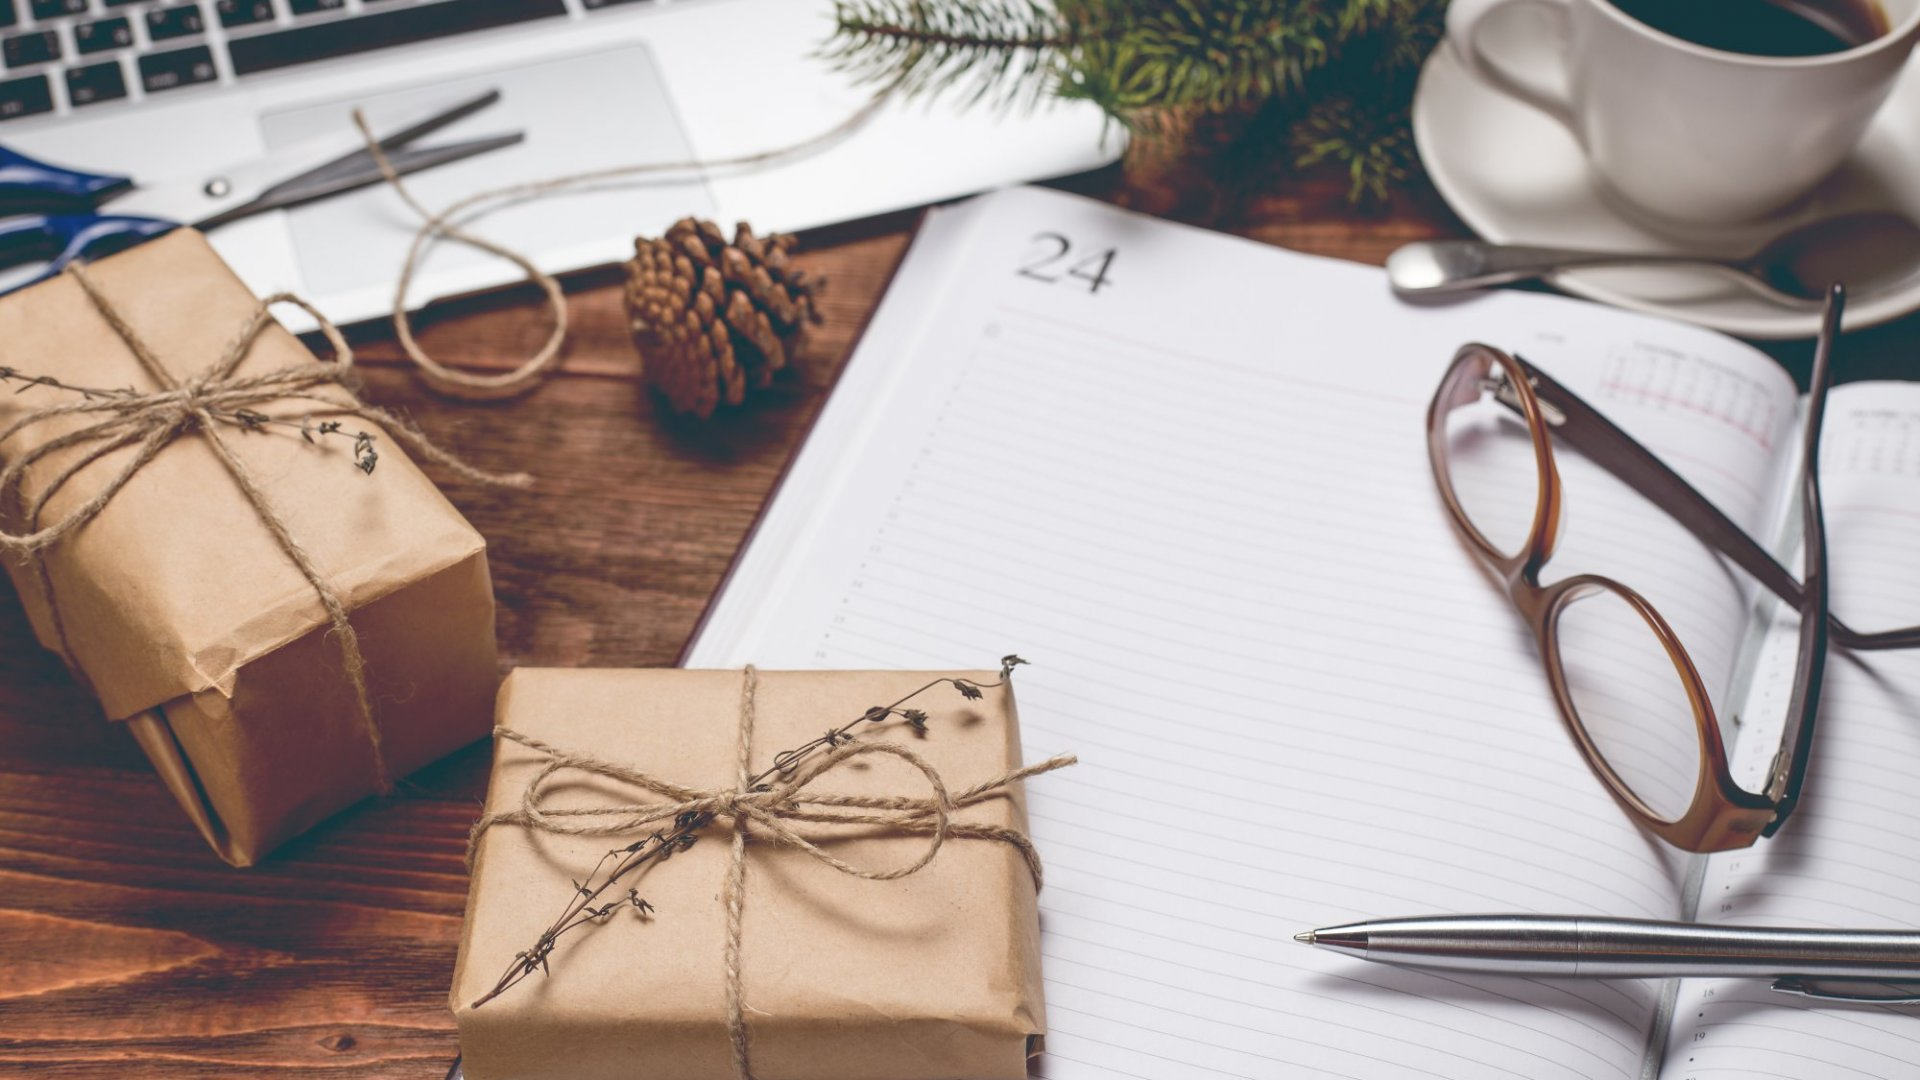 9 Inspired Gift Ideas for the Entrepreneur In Your Life